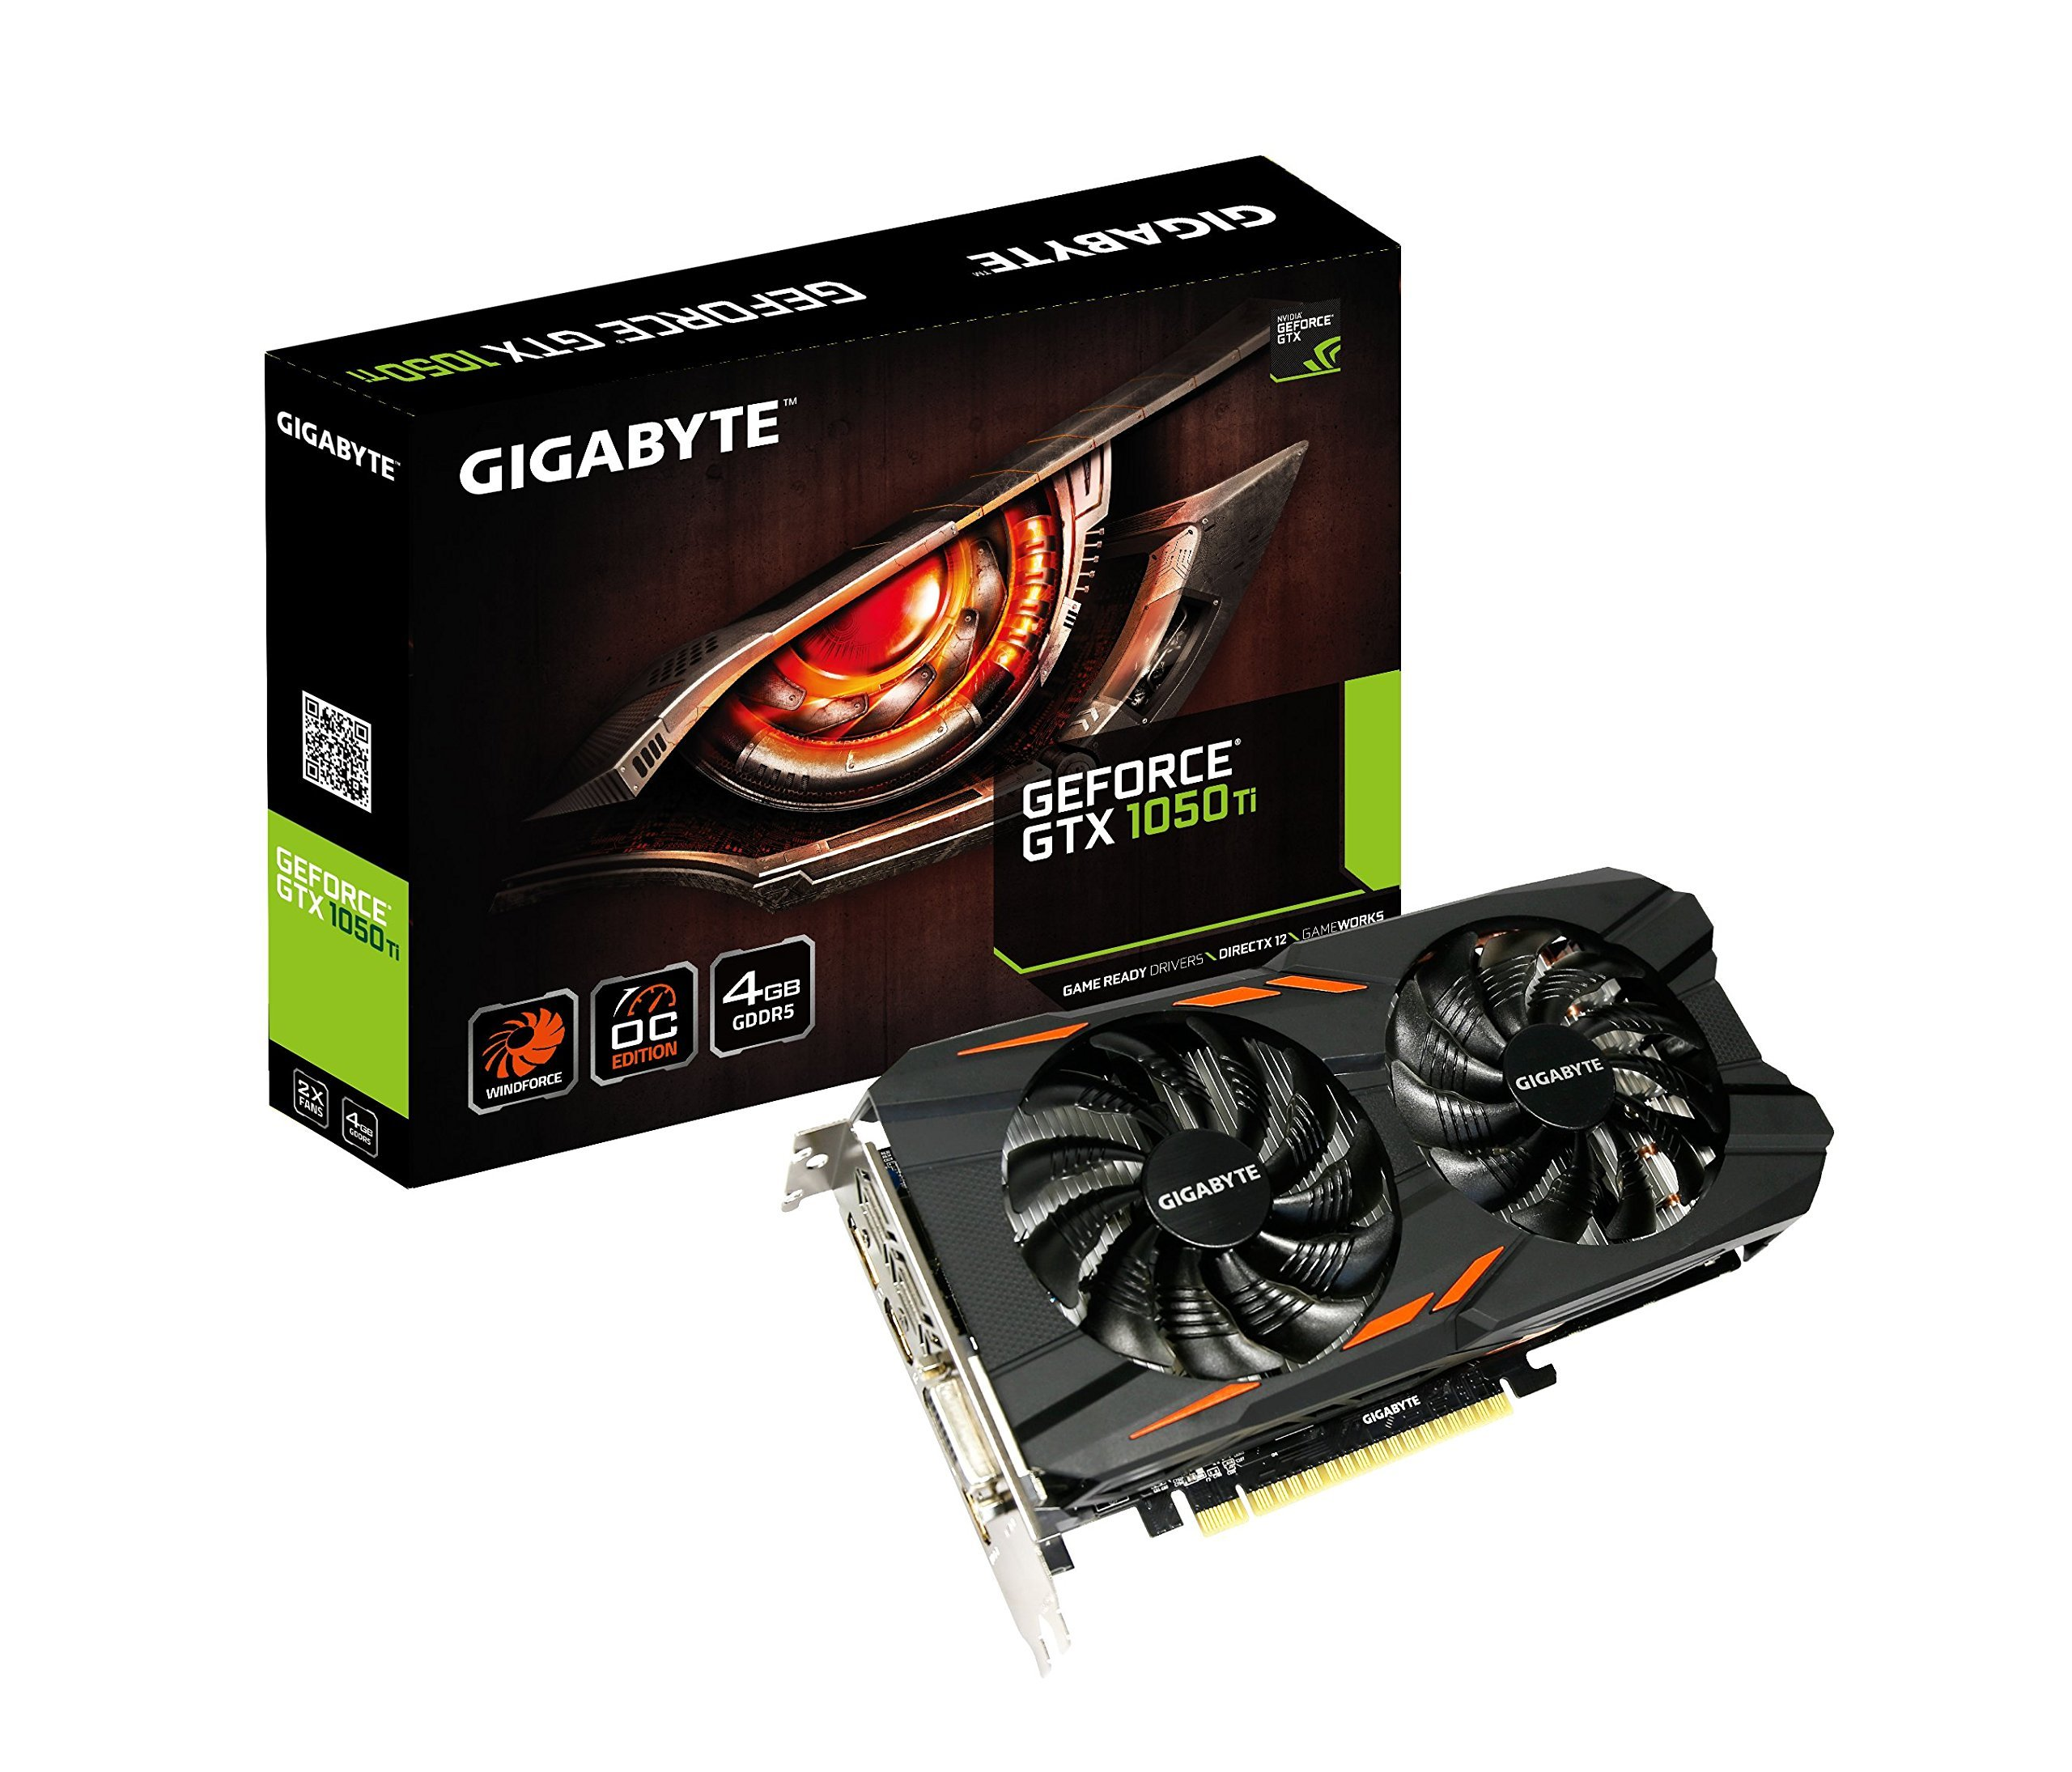 Gigabyte GTX 1050 Ti Windforce OC 4GB GDDR5 128-bit PCI-E Graphic Card (GV-N105TWF2OC-4GD)